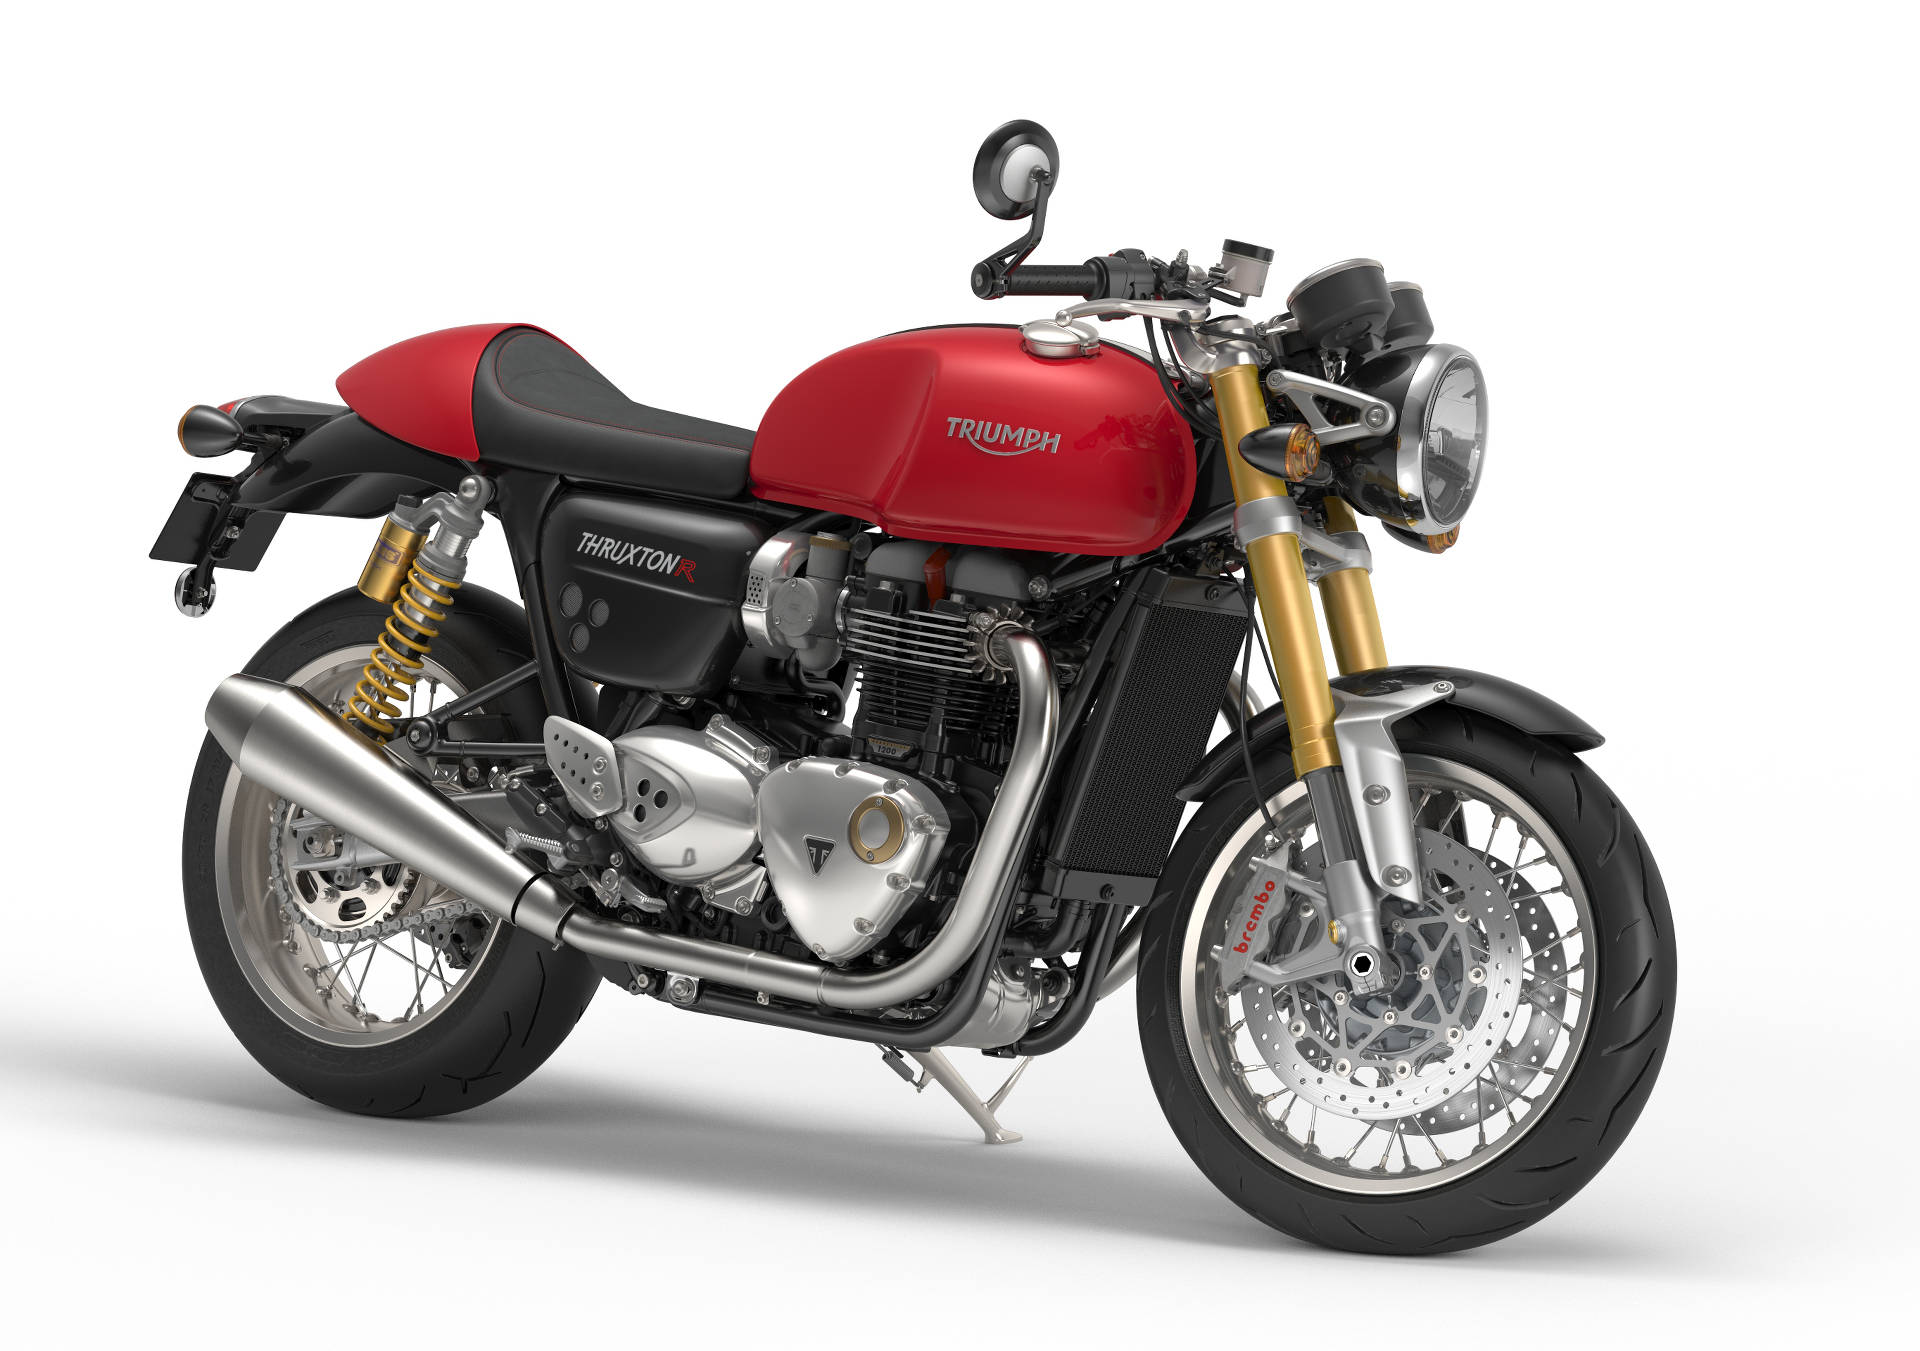 Triumph Unveils New Liquid Cooled Bonneville Family With 1200cc And